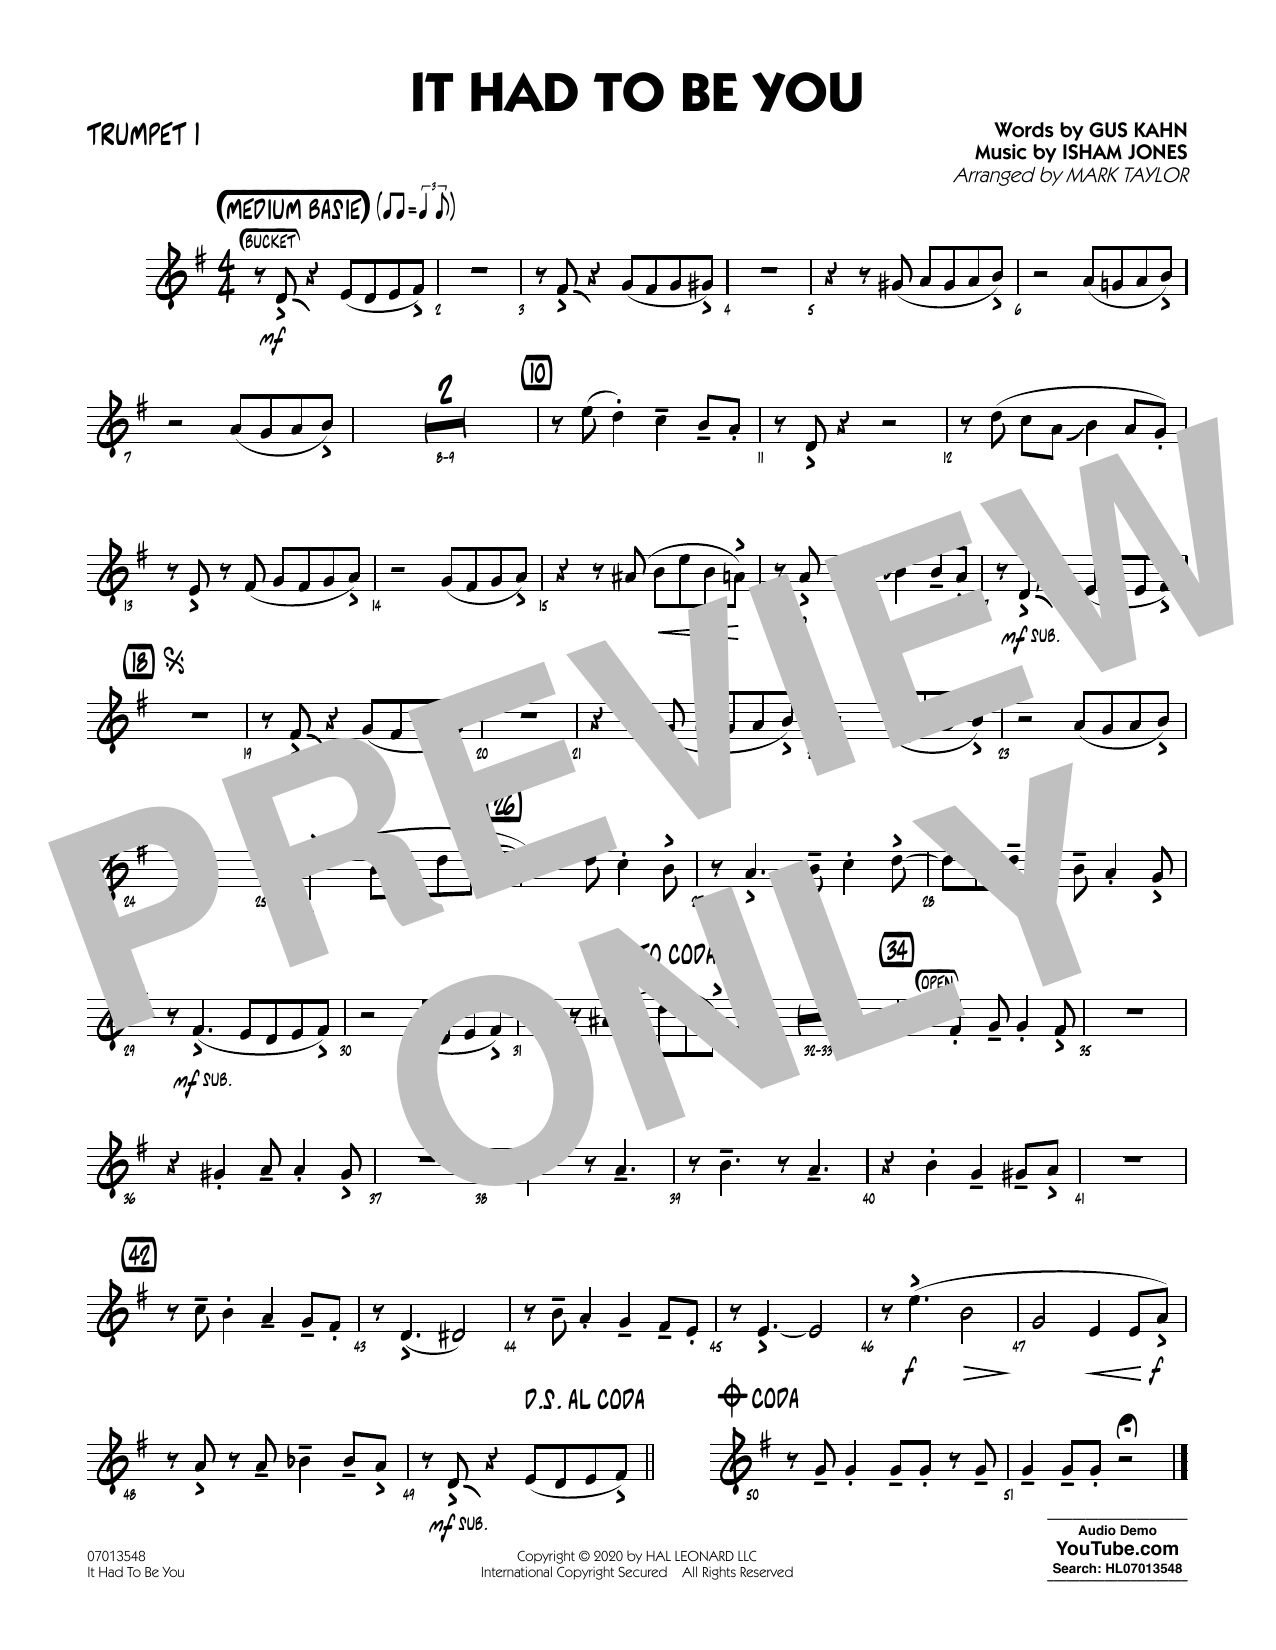 It Had to Be You (arr. Mark Taylor) - Trumpet 1 Sheet Music